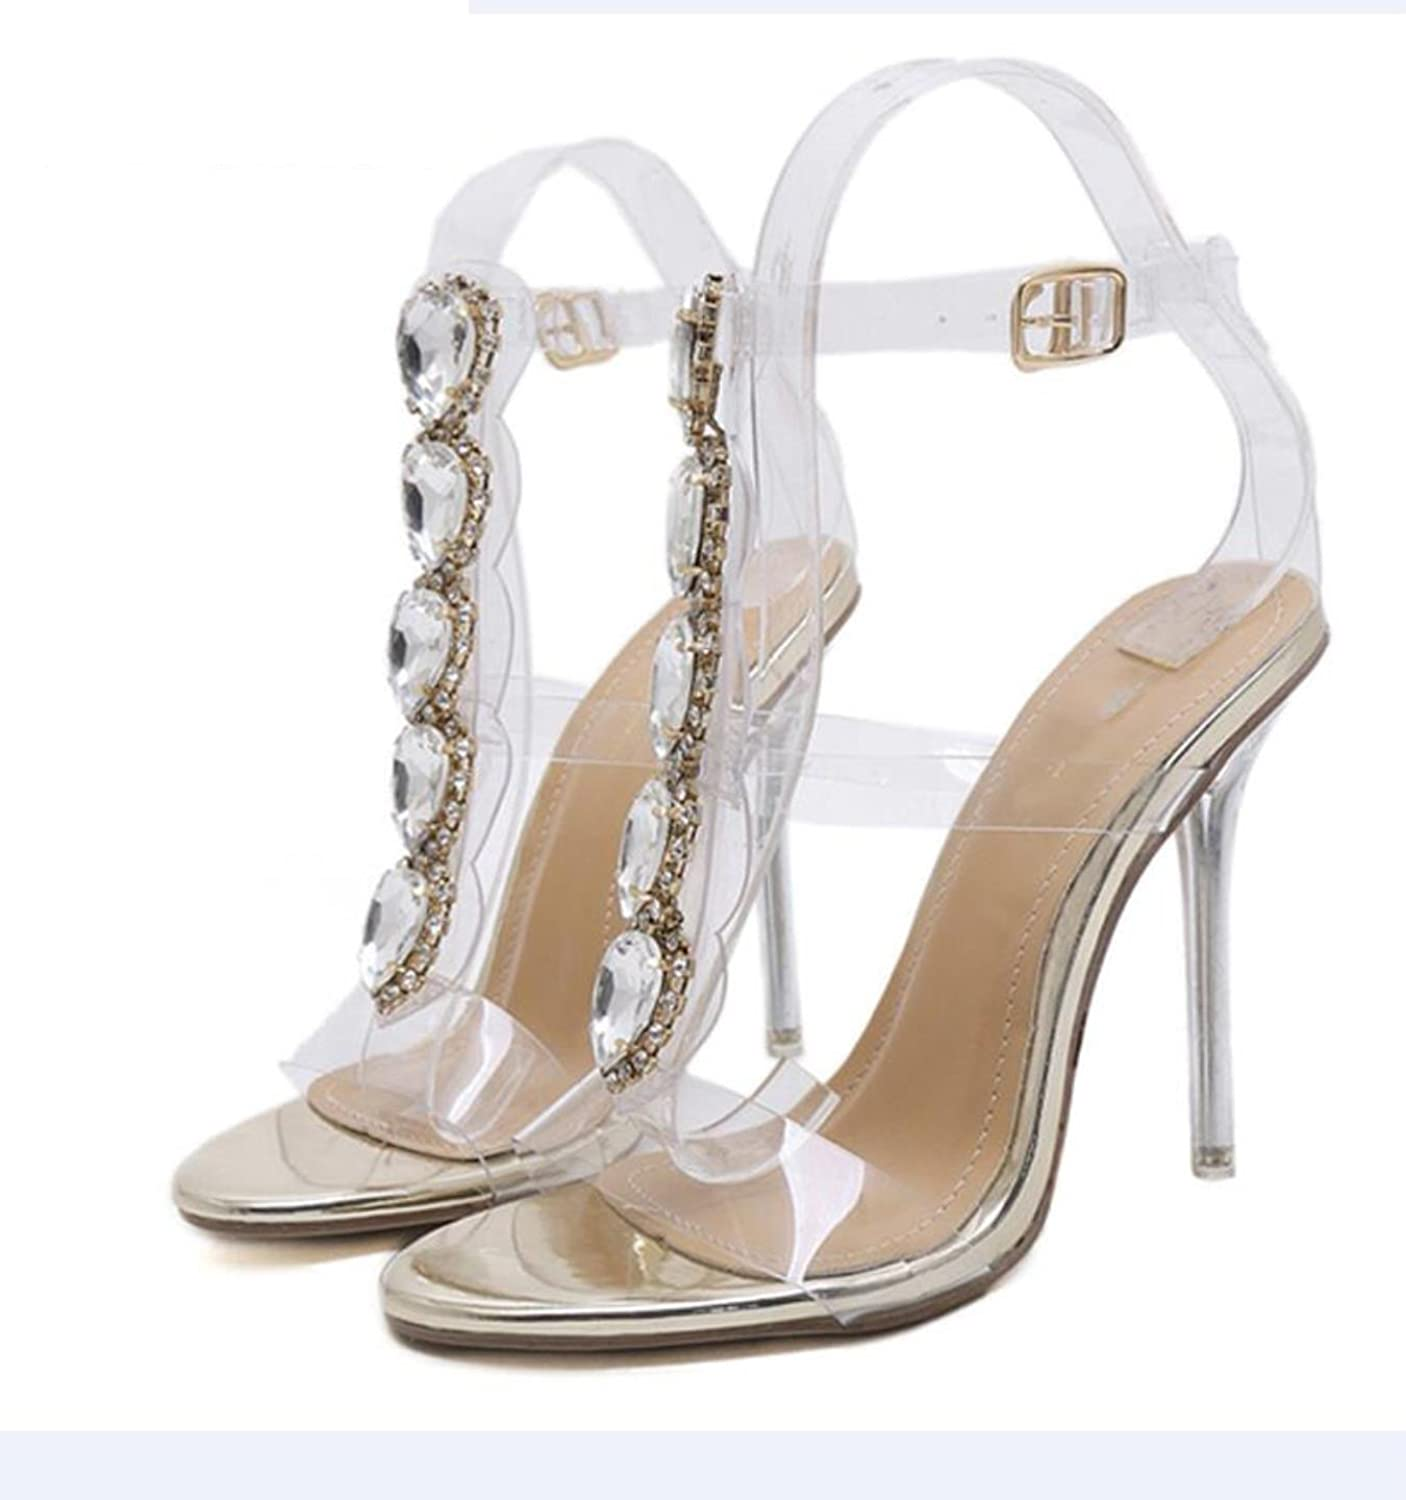 New Summer PVC High Heels Party shoes Fashion Crystal Sandals Elegant Woman Clear Rome T-strap shoes